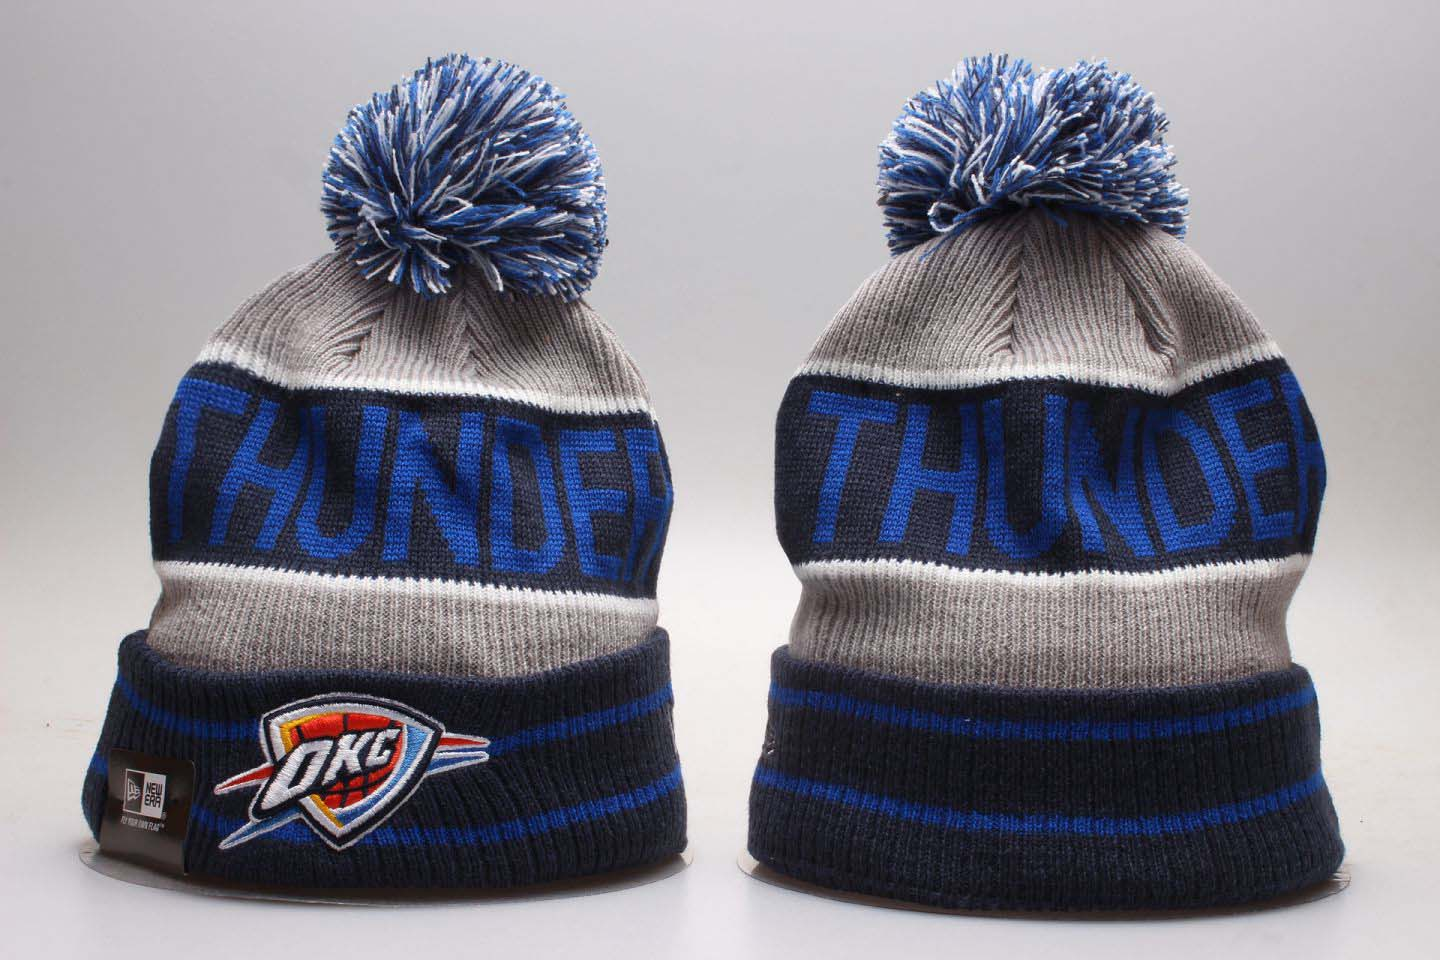 Thunder Blue Wordmark Cuffed Pom Knit Hat YP